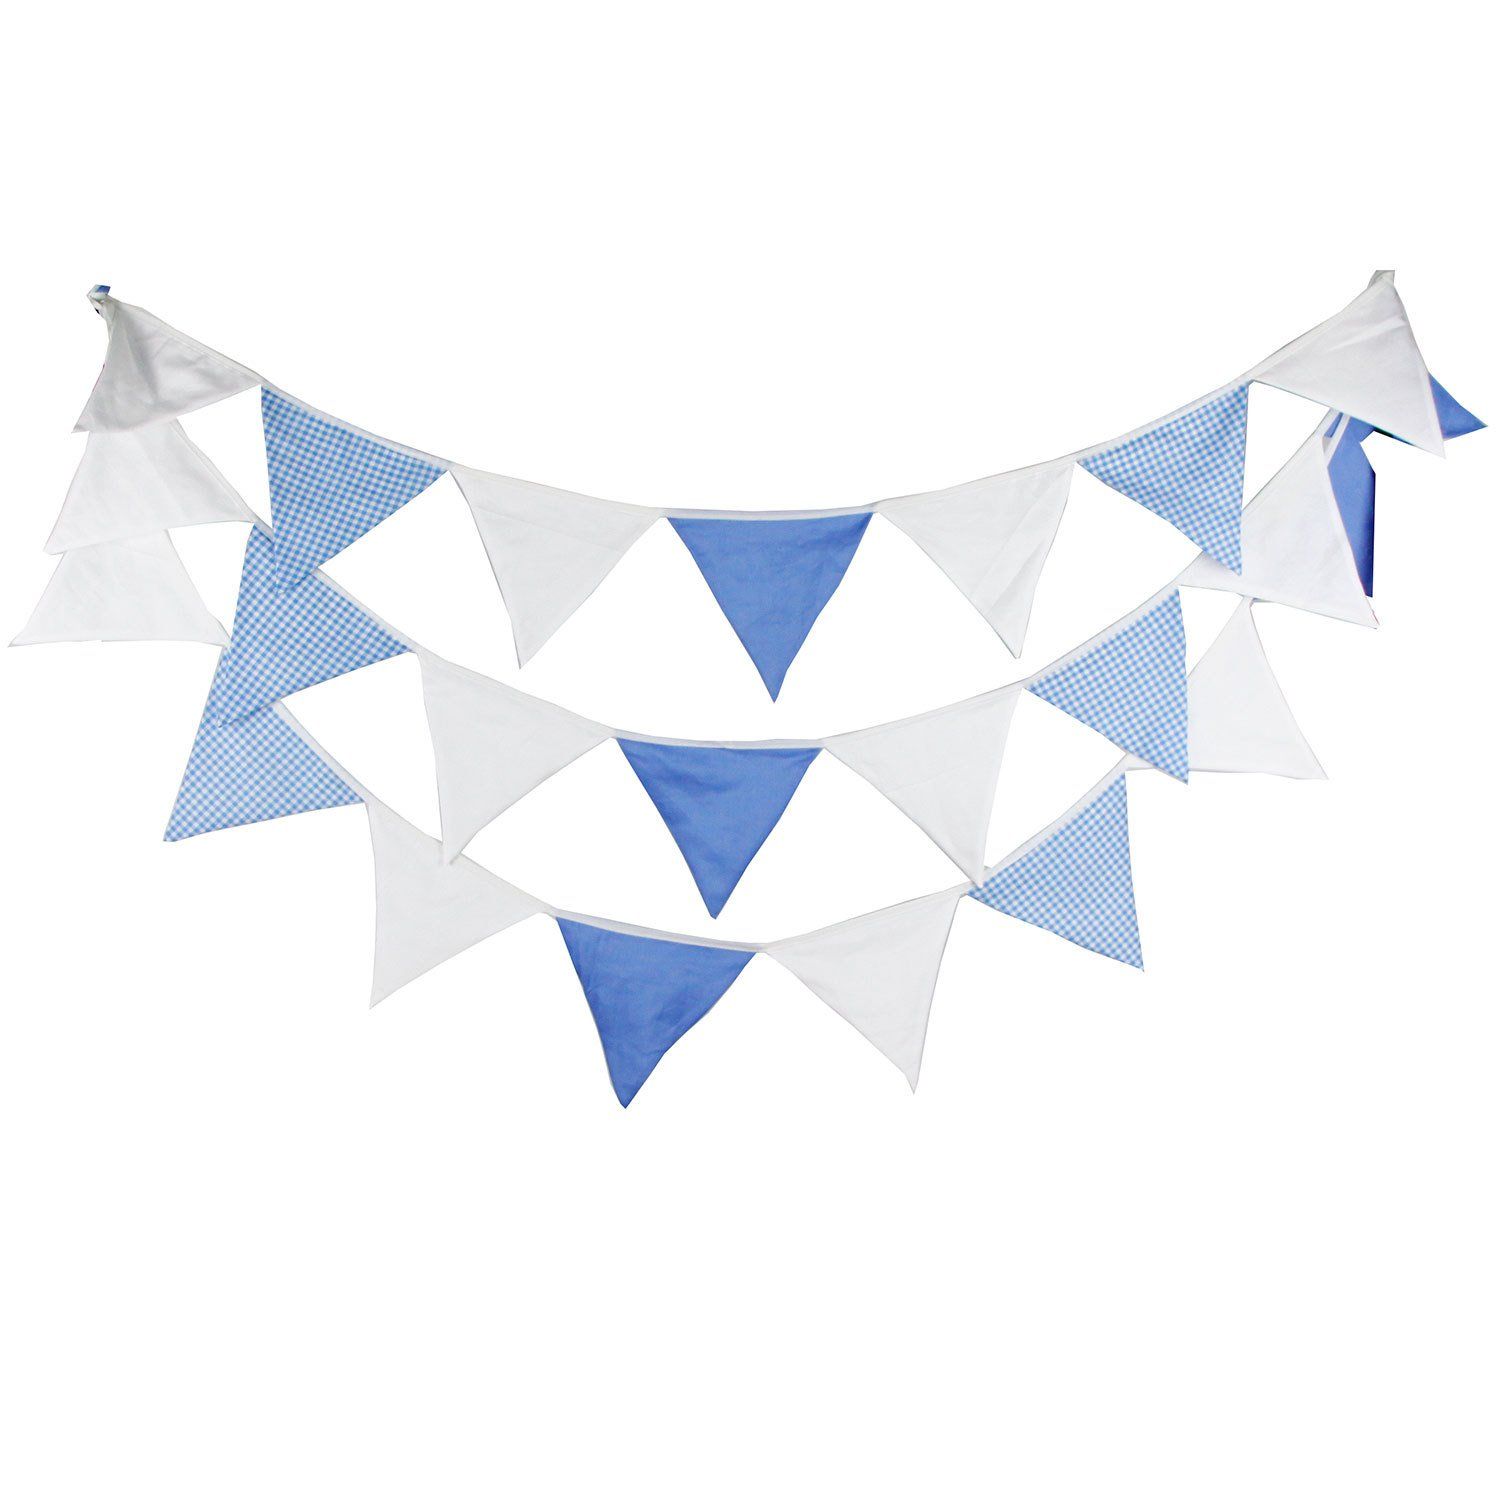 16 Feet Extra Long Blue White Solid Plaid Fabric Bunting Banner for Wedding Garland Boy Baby Shower Neutral Birthday Party Nursery Hanging Pennant Garden Patio Decoration AllHeartDesires